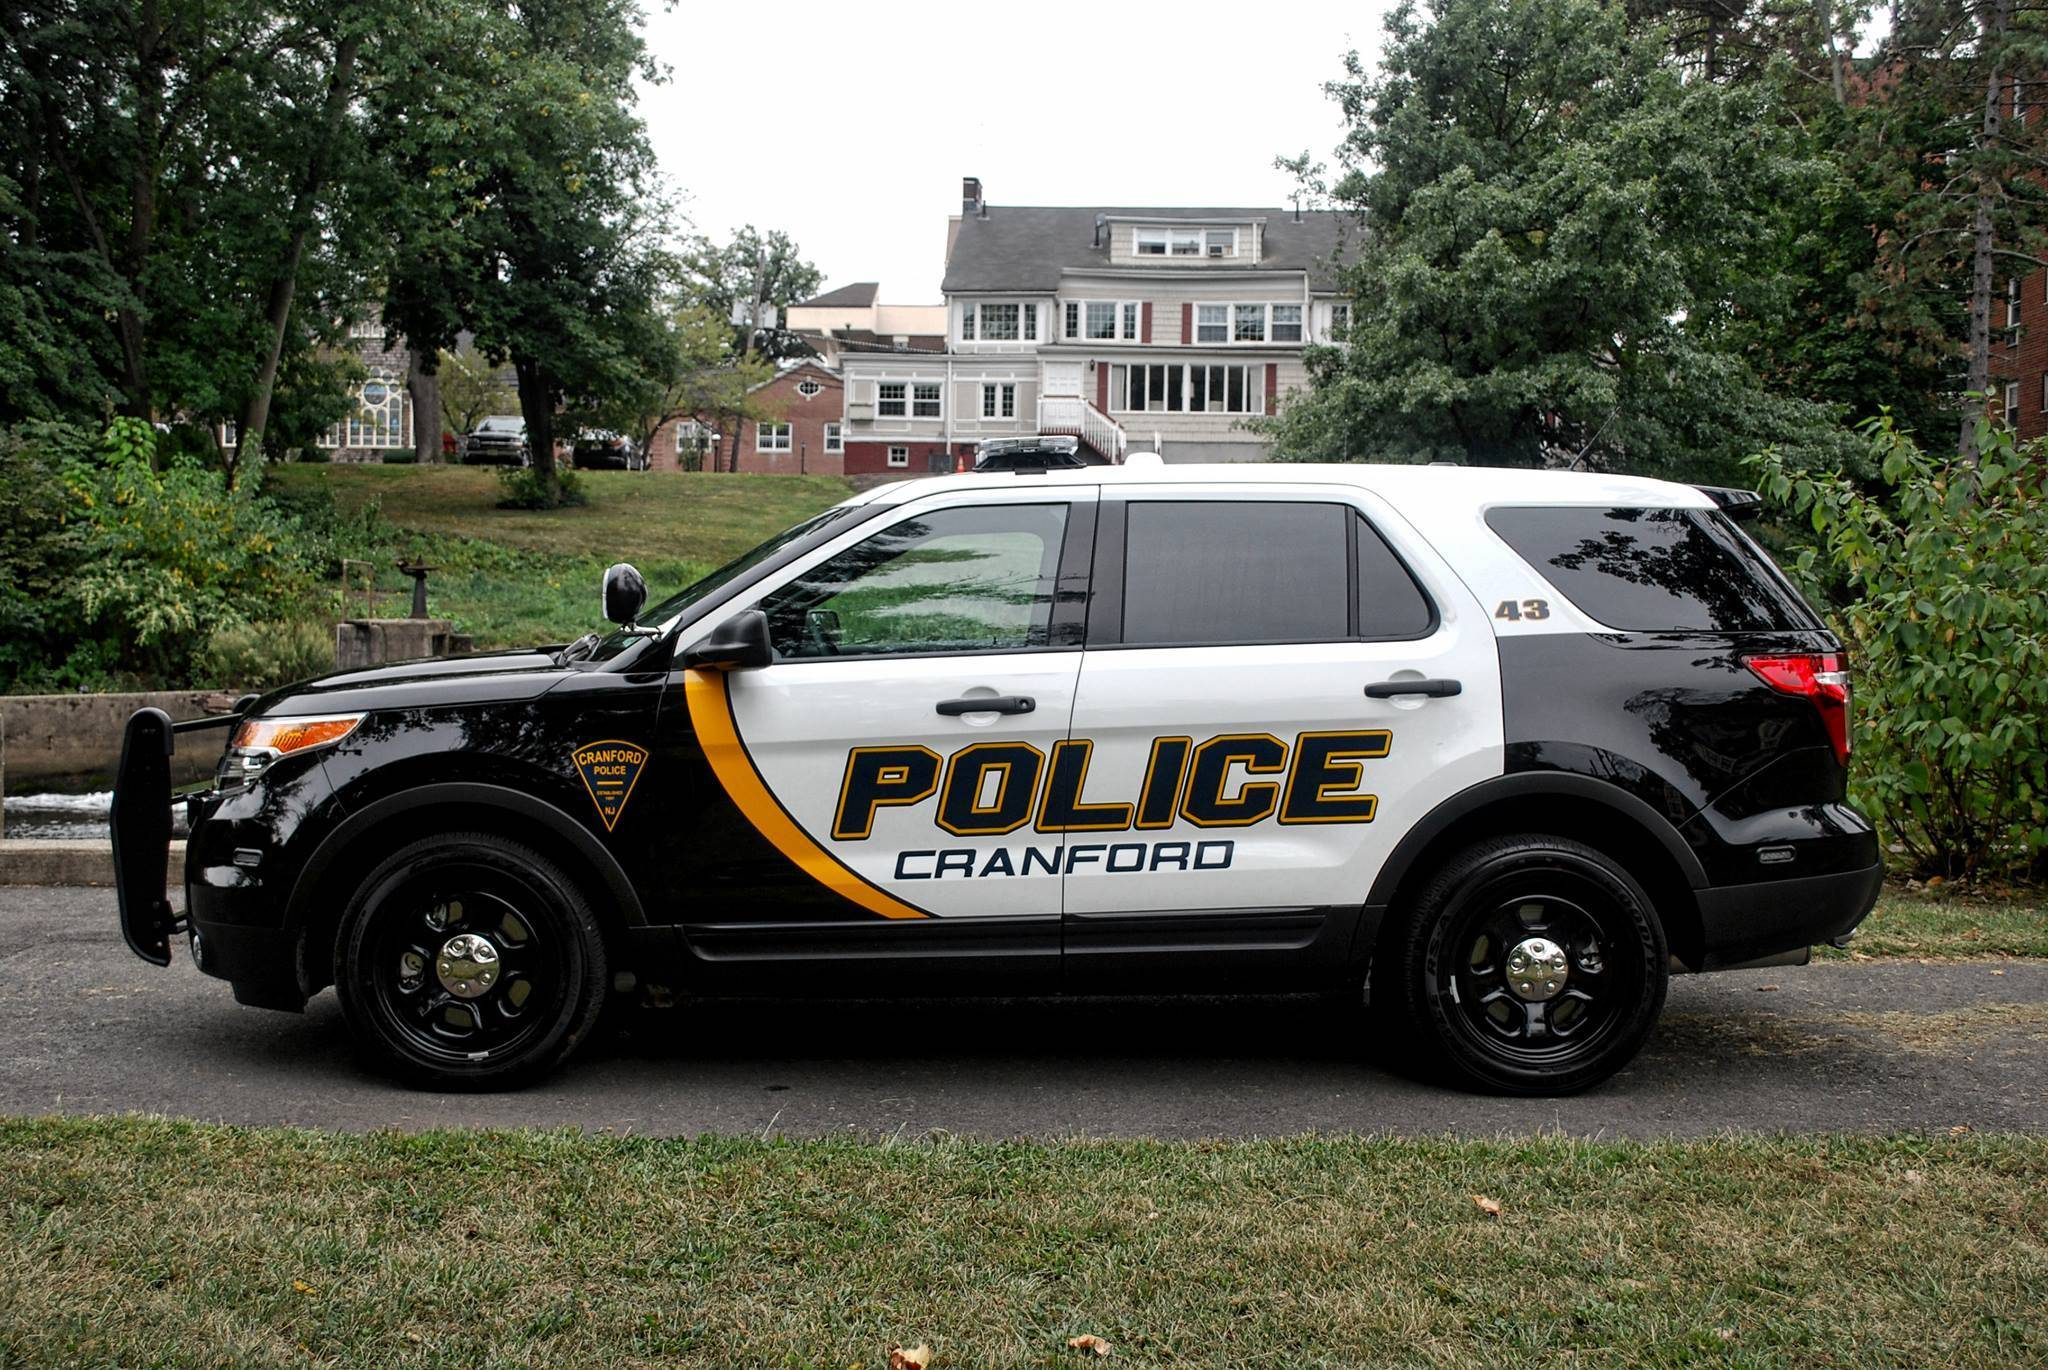 cranford police department arrest five for stolen vehicle